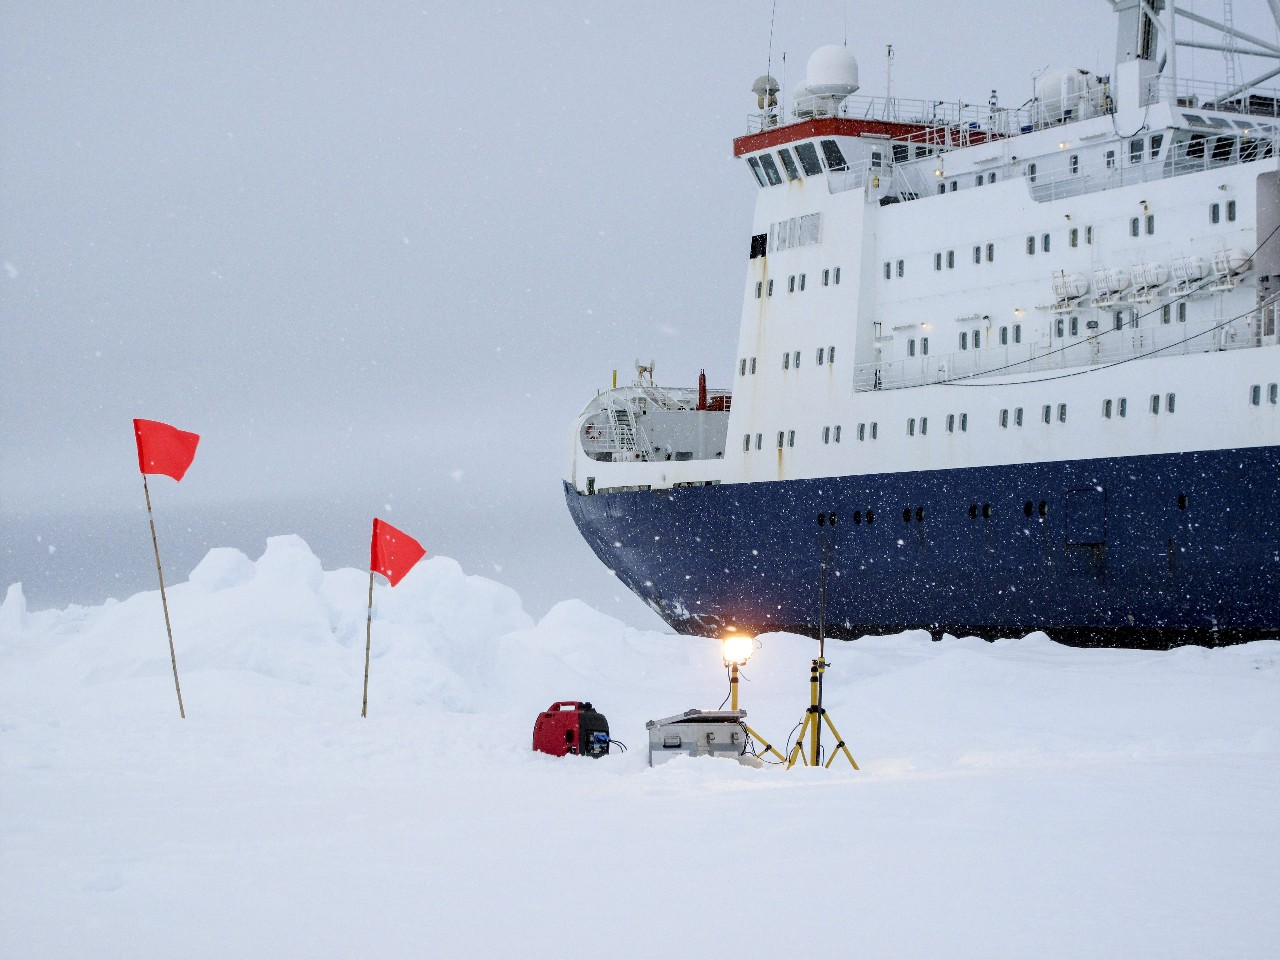 Dataloggers measuring environmental parameters near a research icebreaker over an ice floe in Antarctica